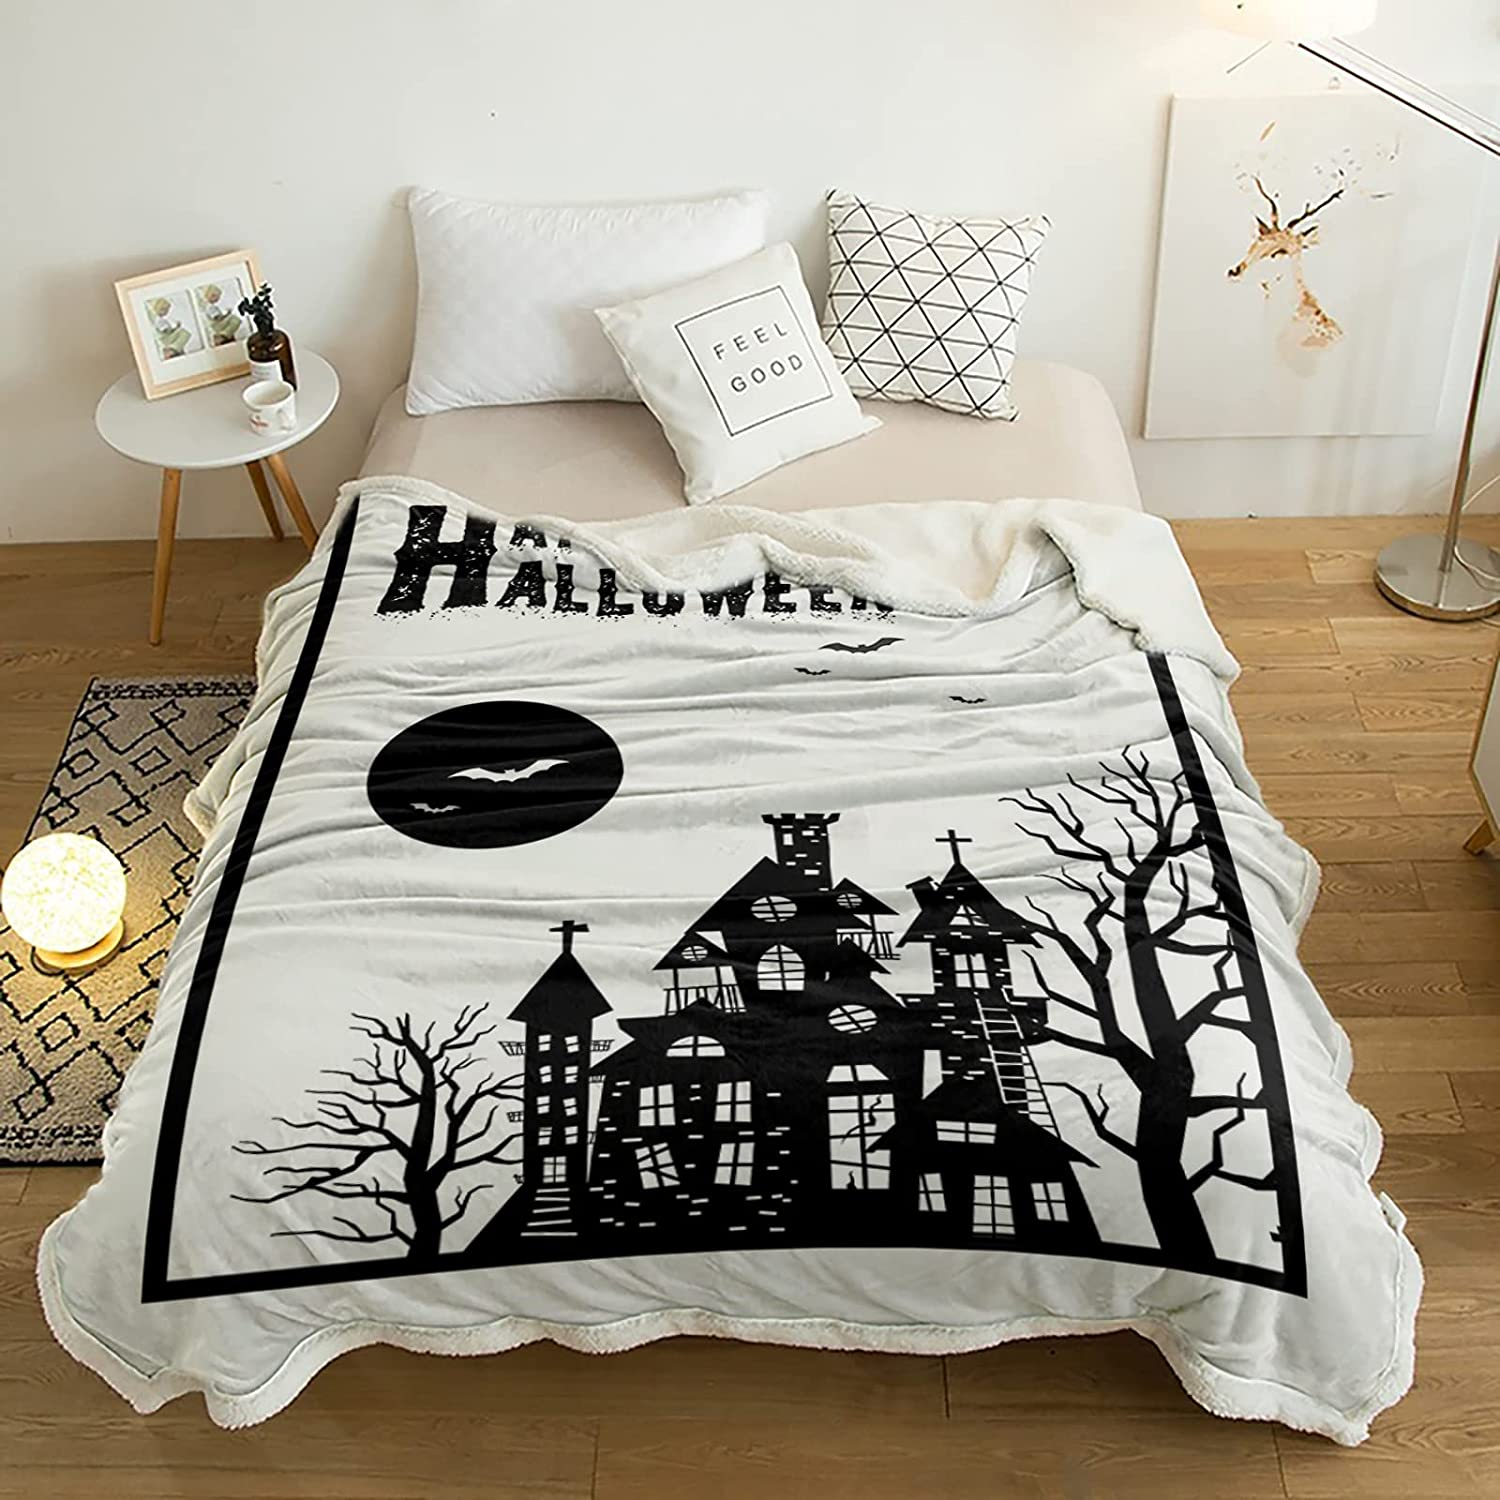 Sherpa Throw Blanket Halloween Haunted War House Cozy Super Soft Selling free shipping